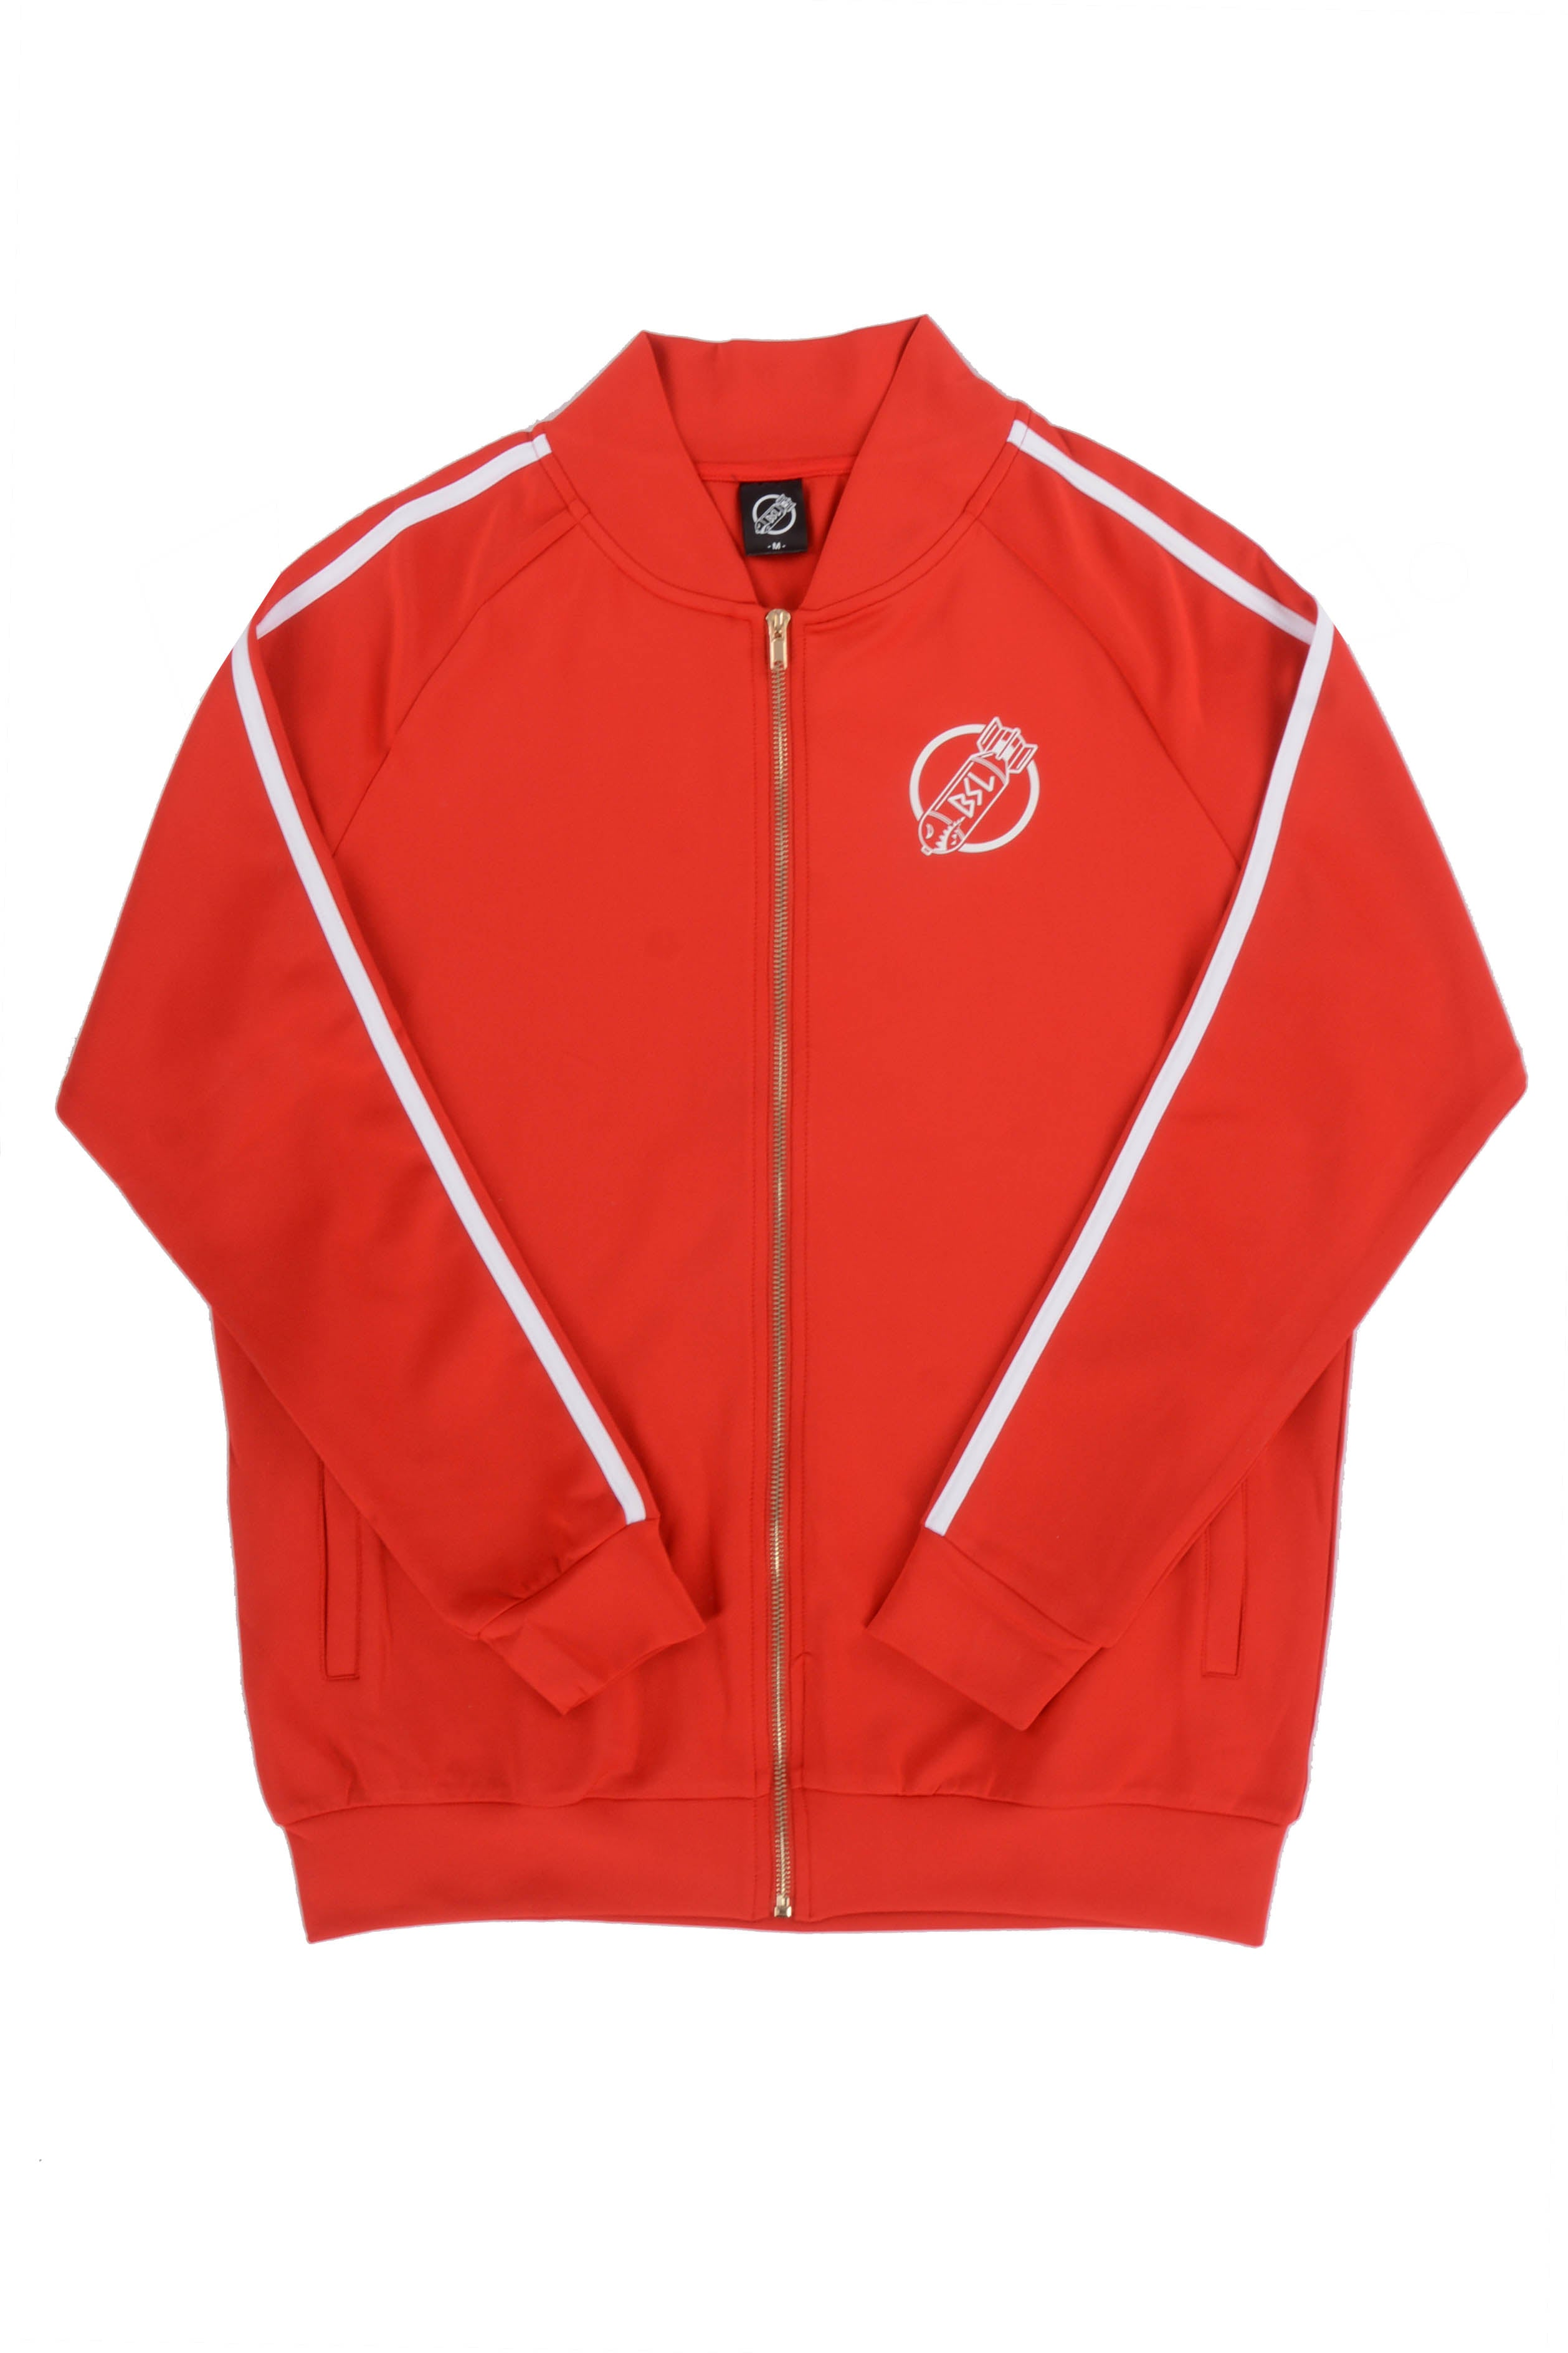 BSL Yesterday 2 Track Jacket- BSL502 - Red